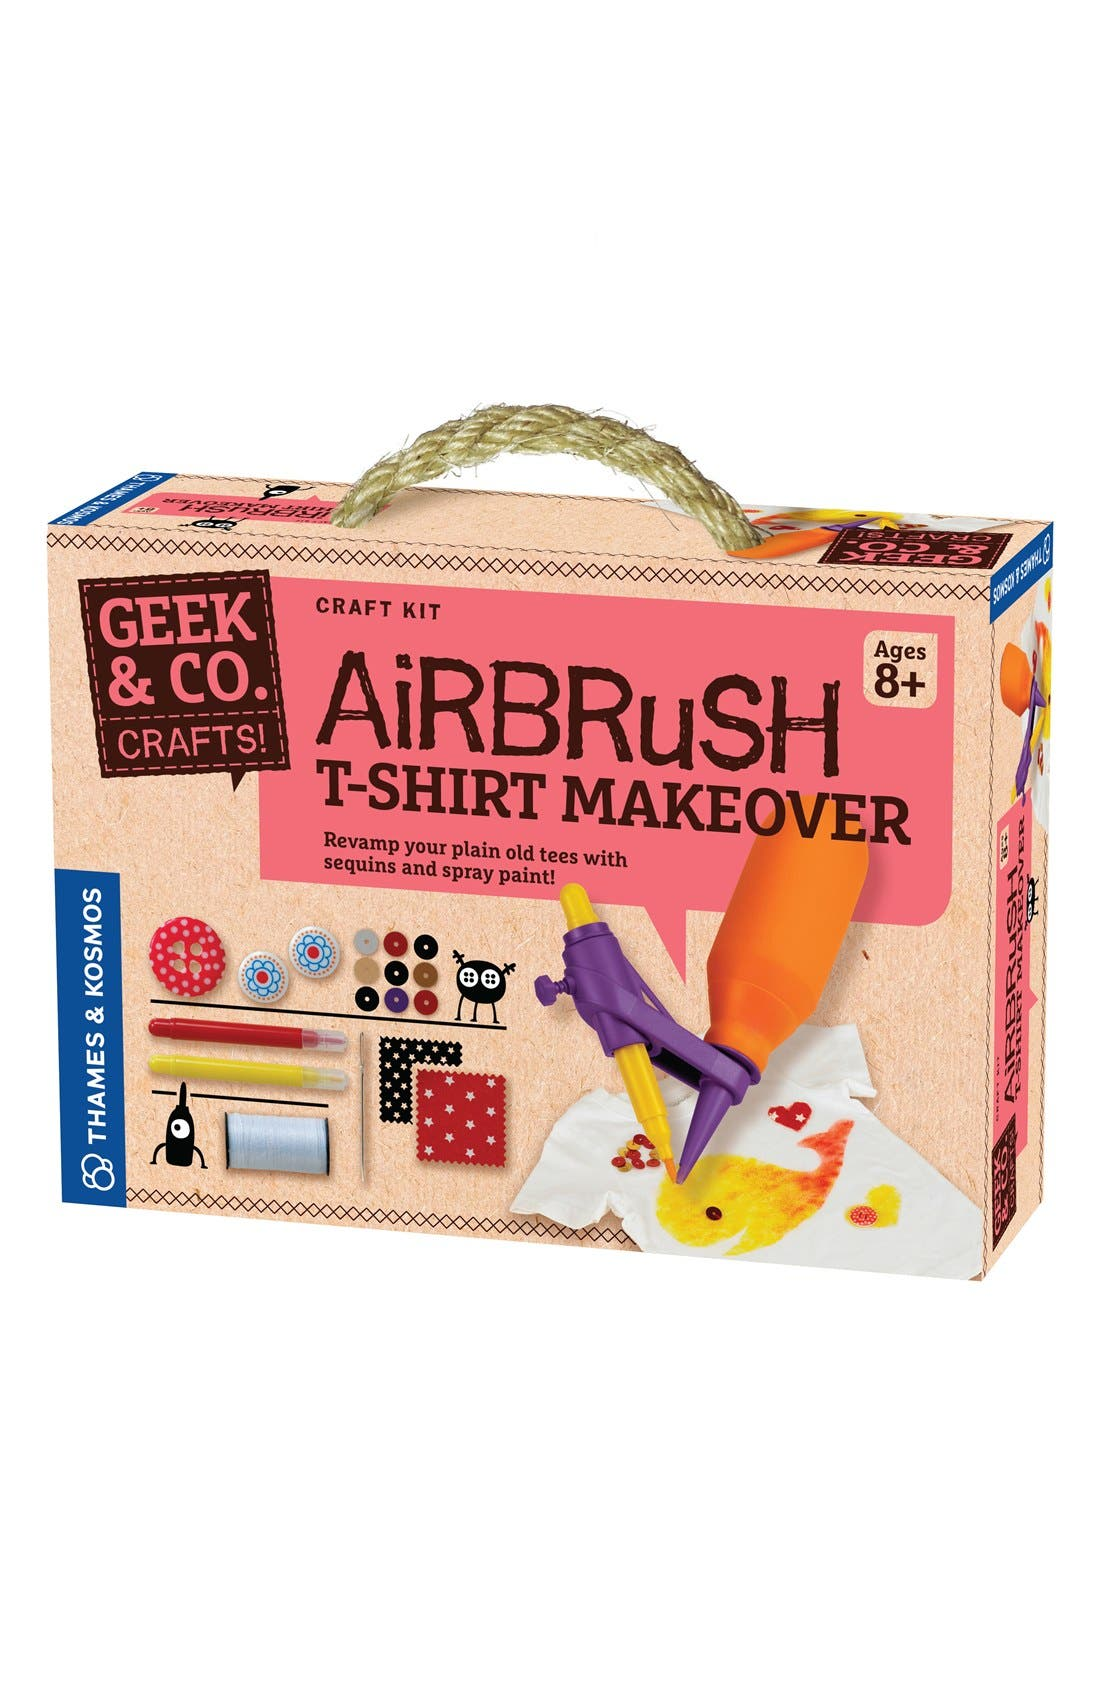 Thames & Kosmos 'Airbrush T-Shirt Makeover' Kit